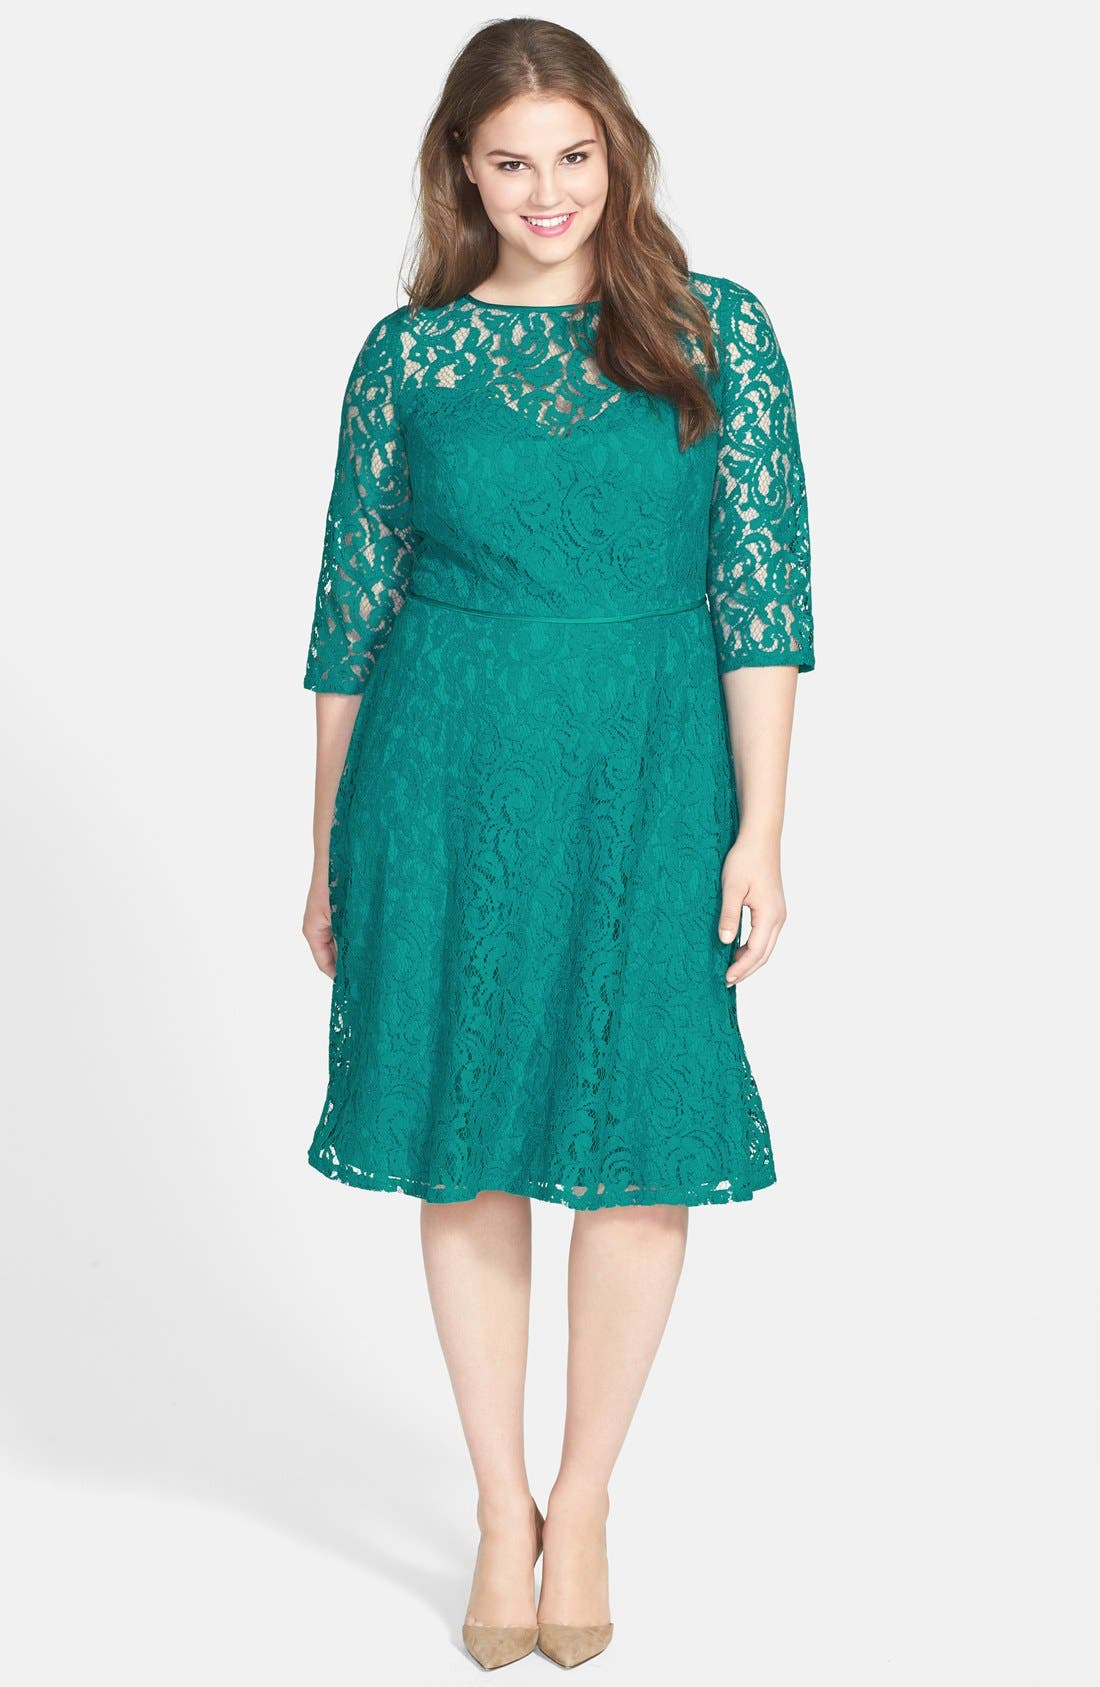 Alternate Image 1 Selected - Adrianna Papell Cutout Back Lace Fit & Flare Dress (Plus Size)